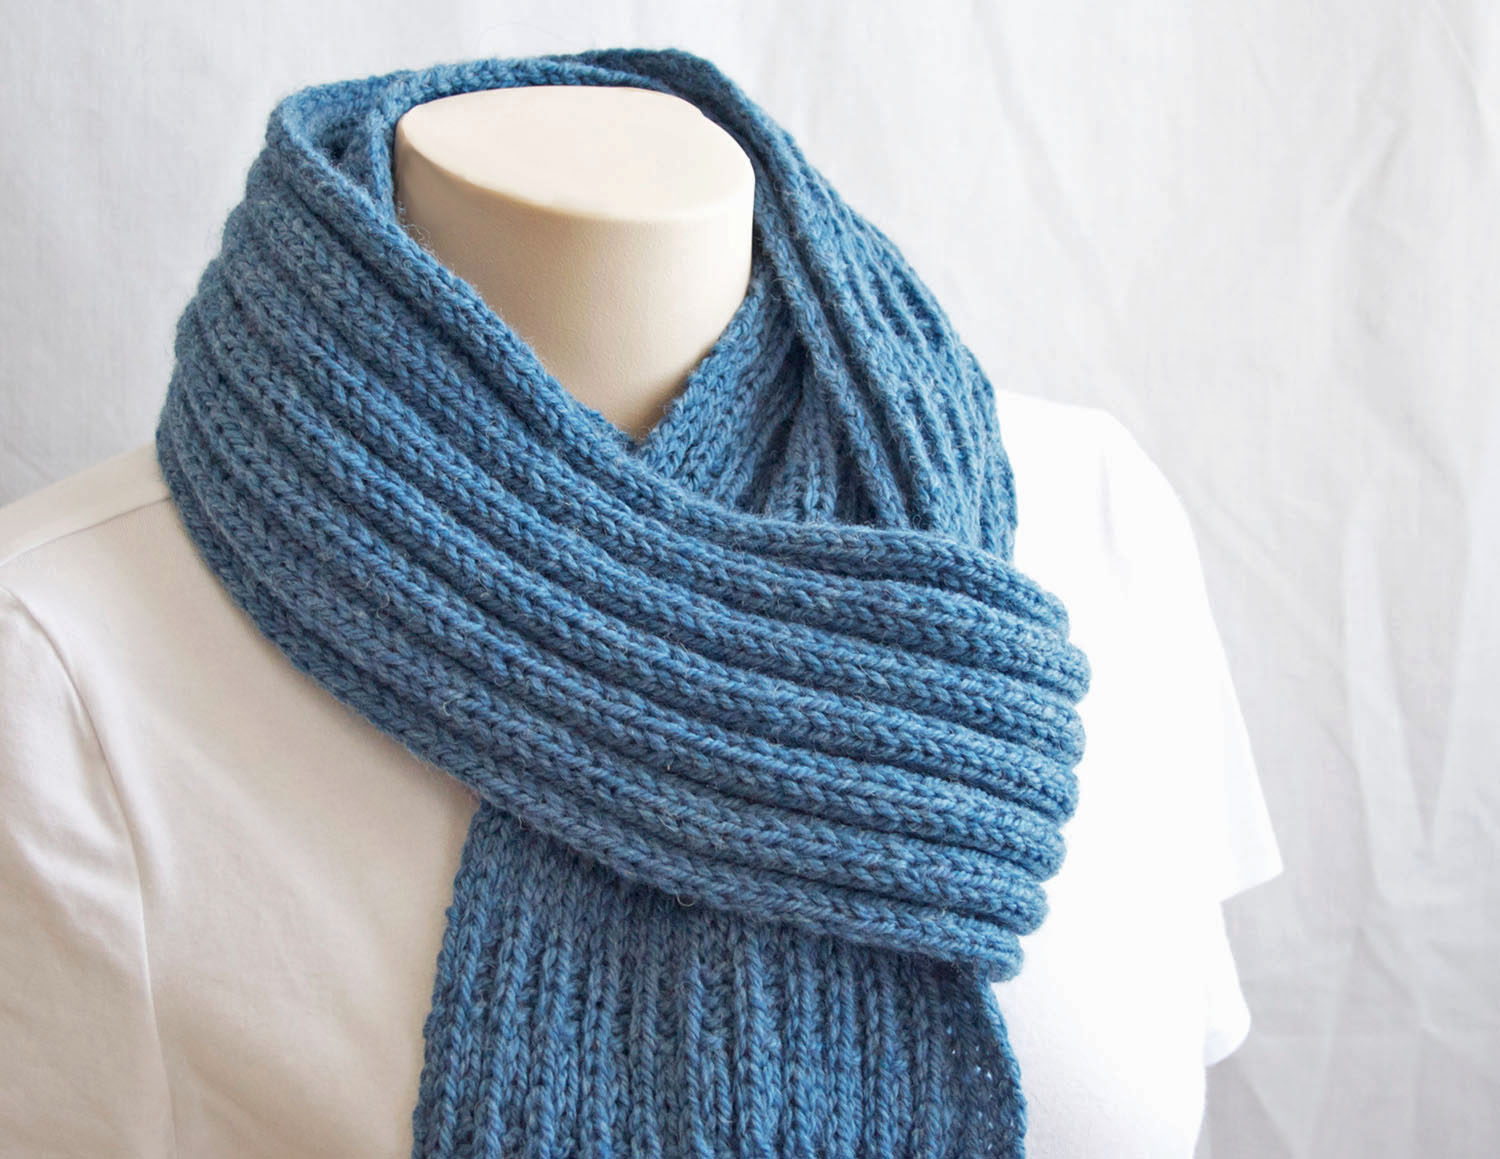 Simple Knitting Pattern For A Scarf : Une maille a la fois: Knitting Pattern Scarf ... Patron ...